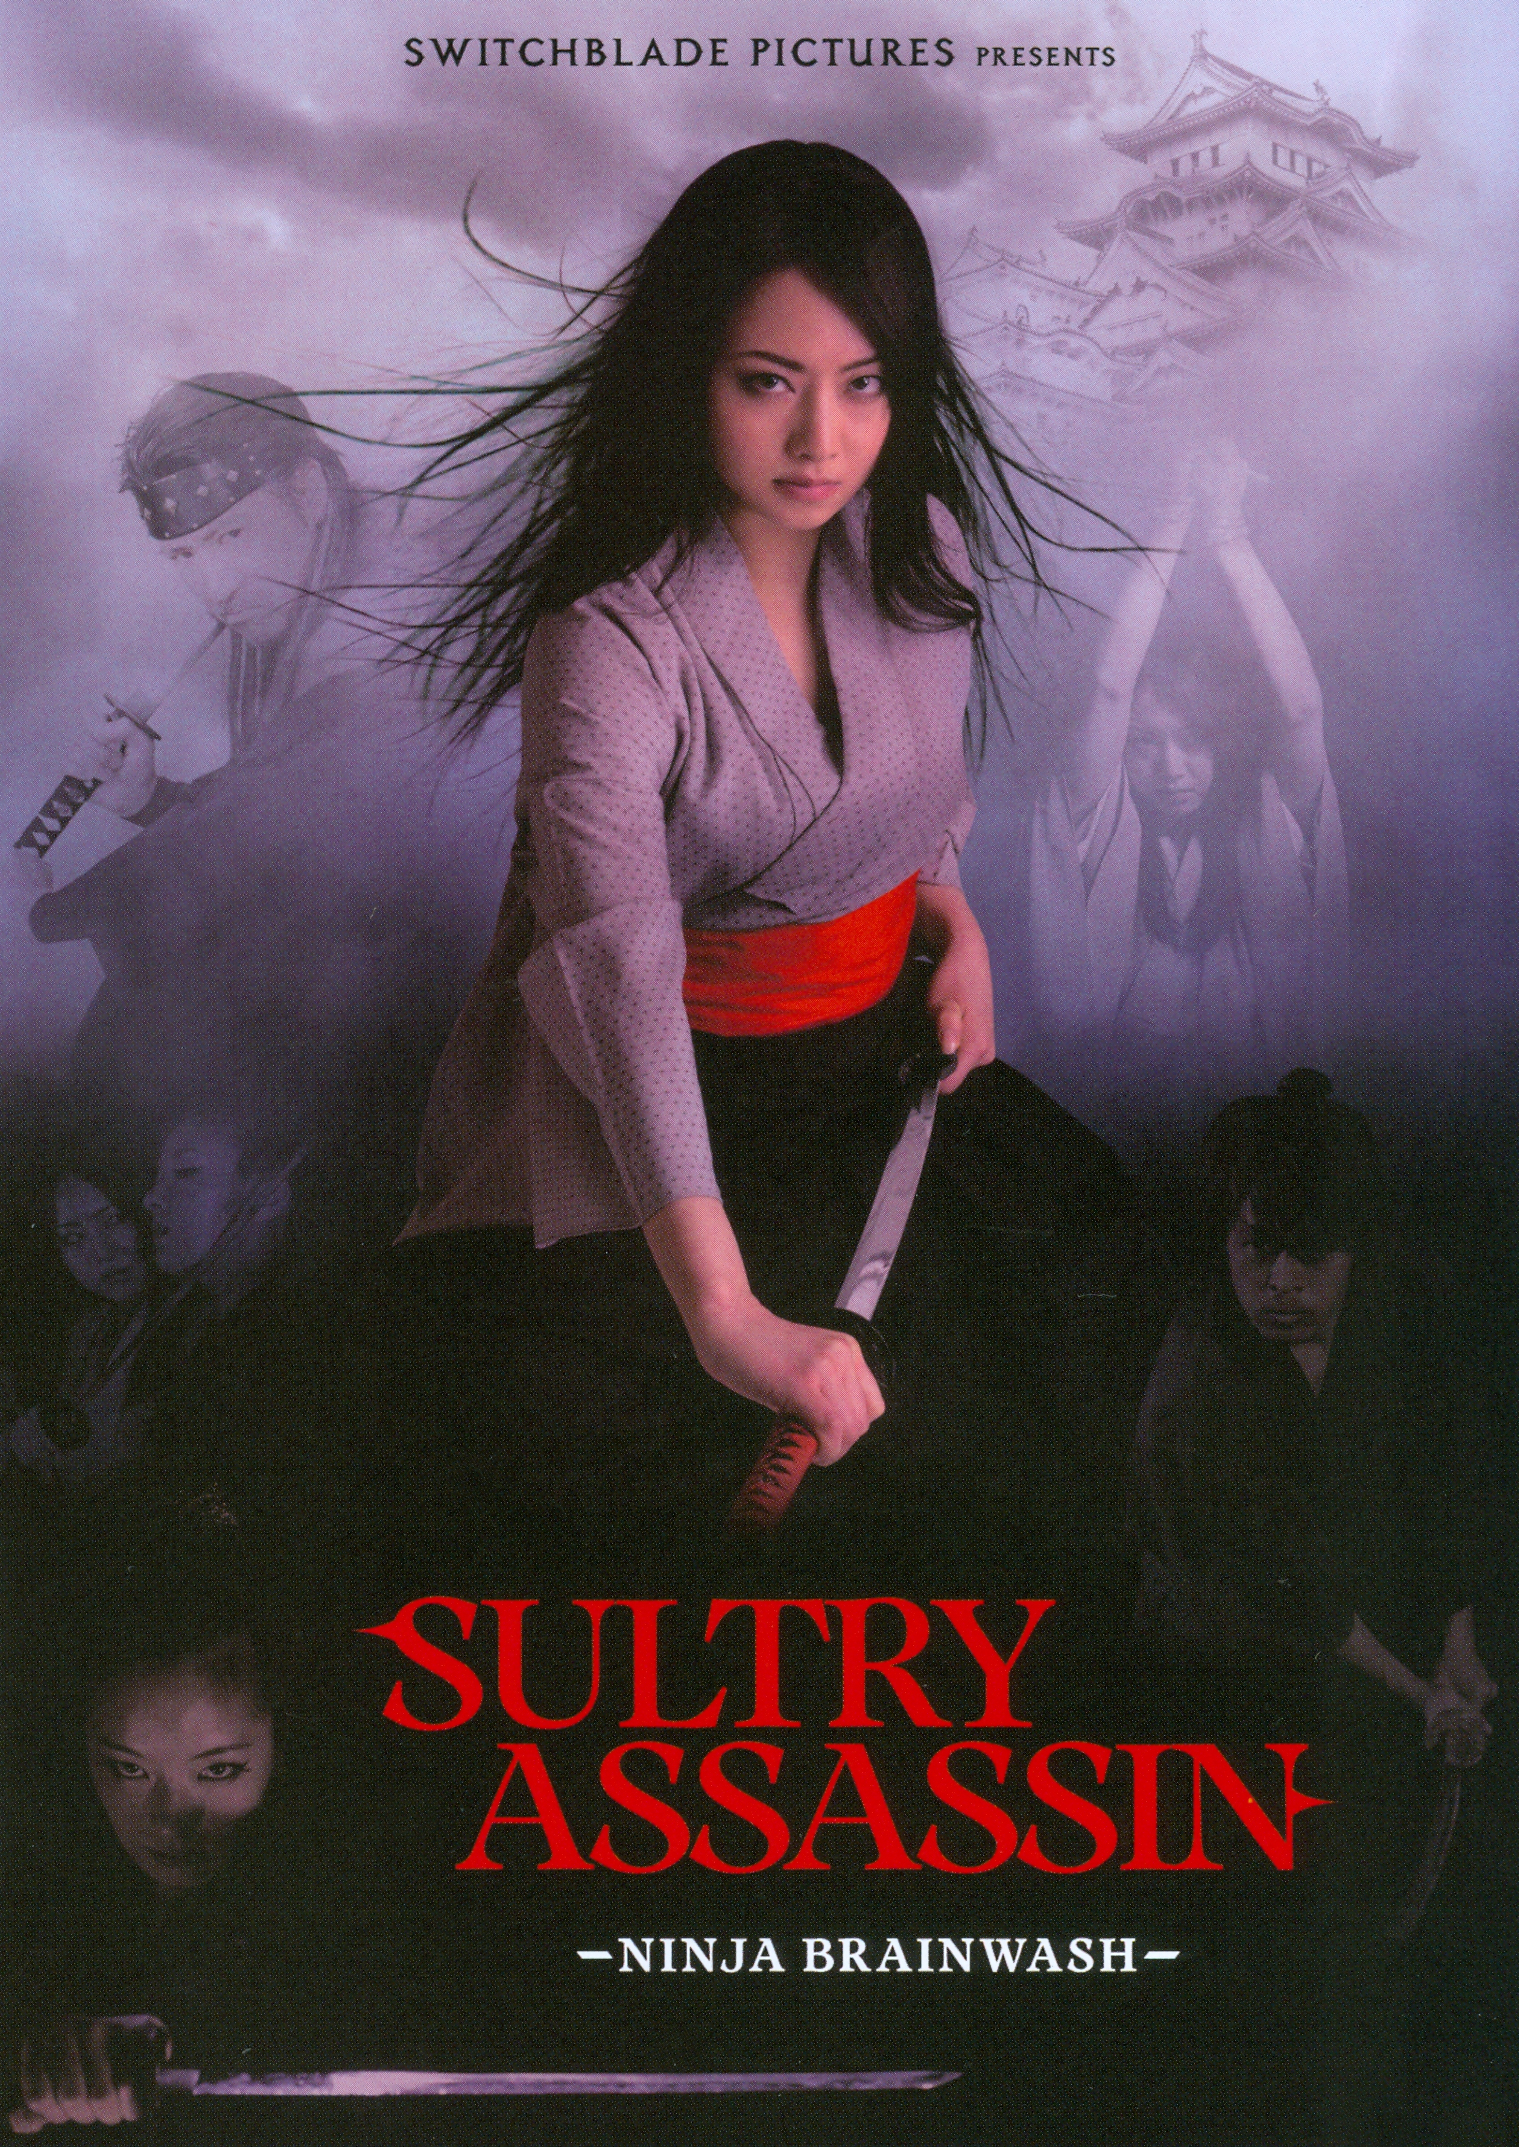 Sultry Assassin: Ninja Brainwash